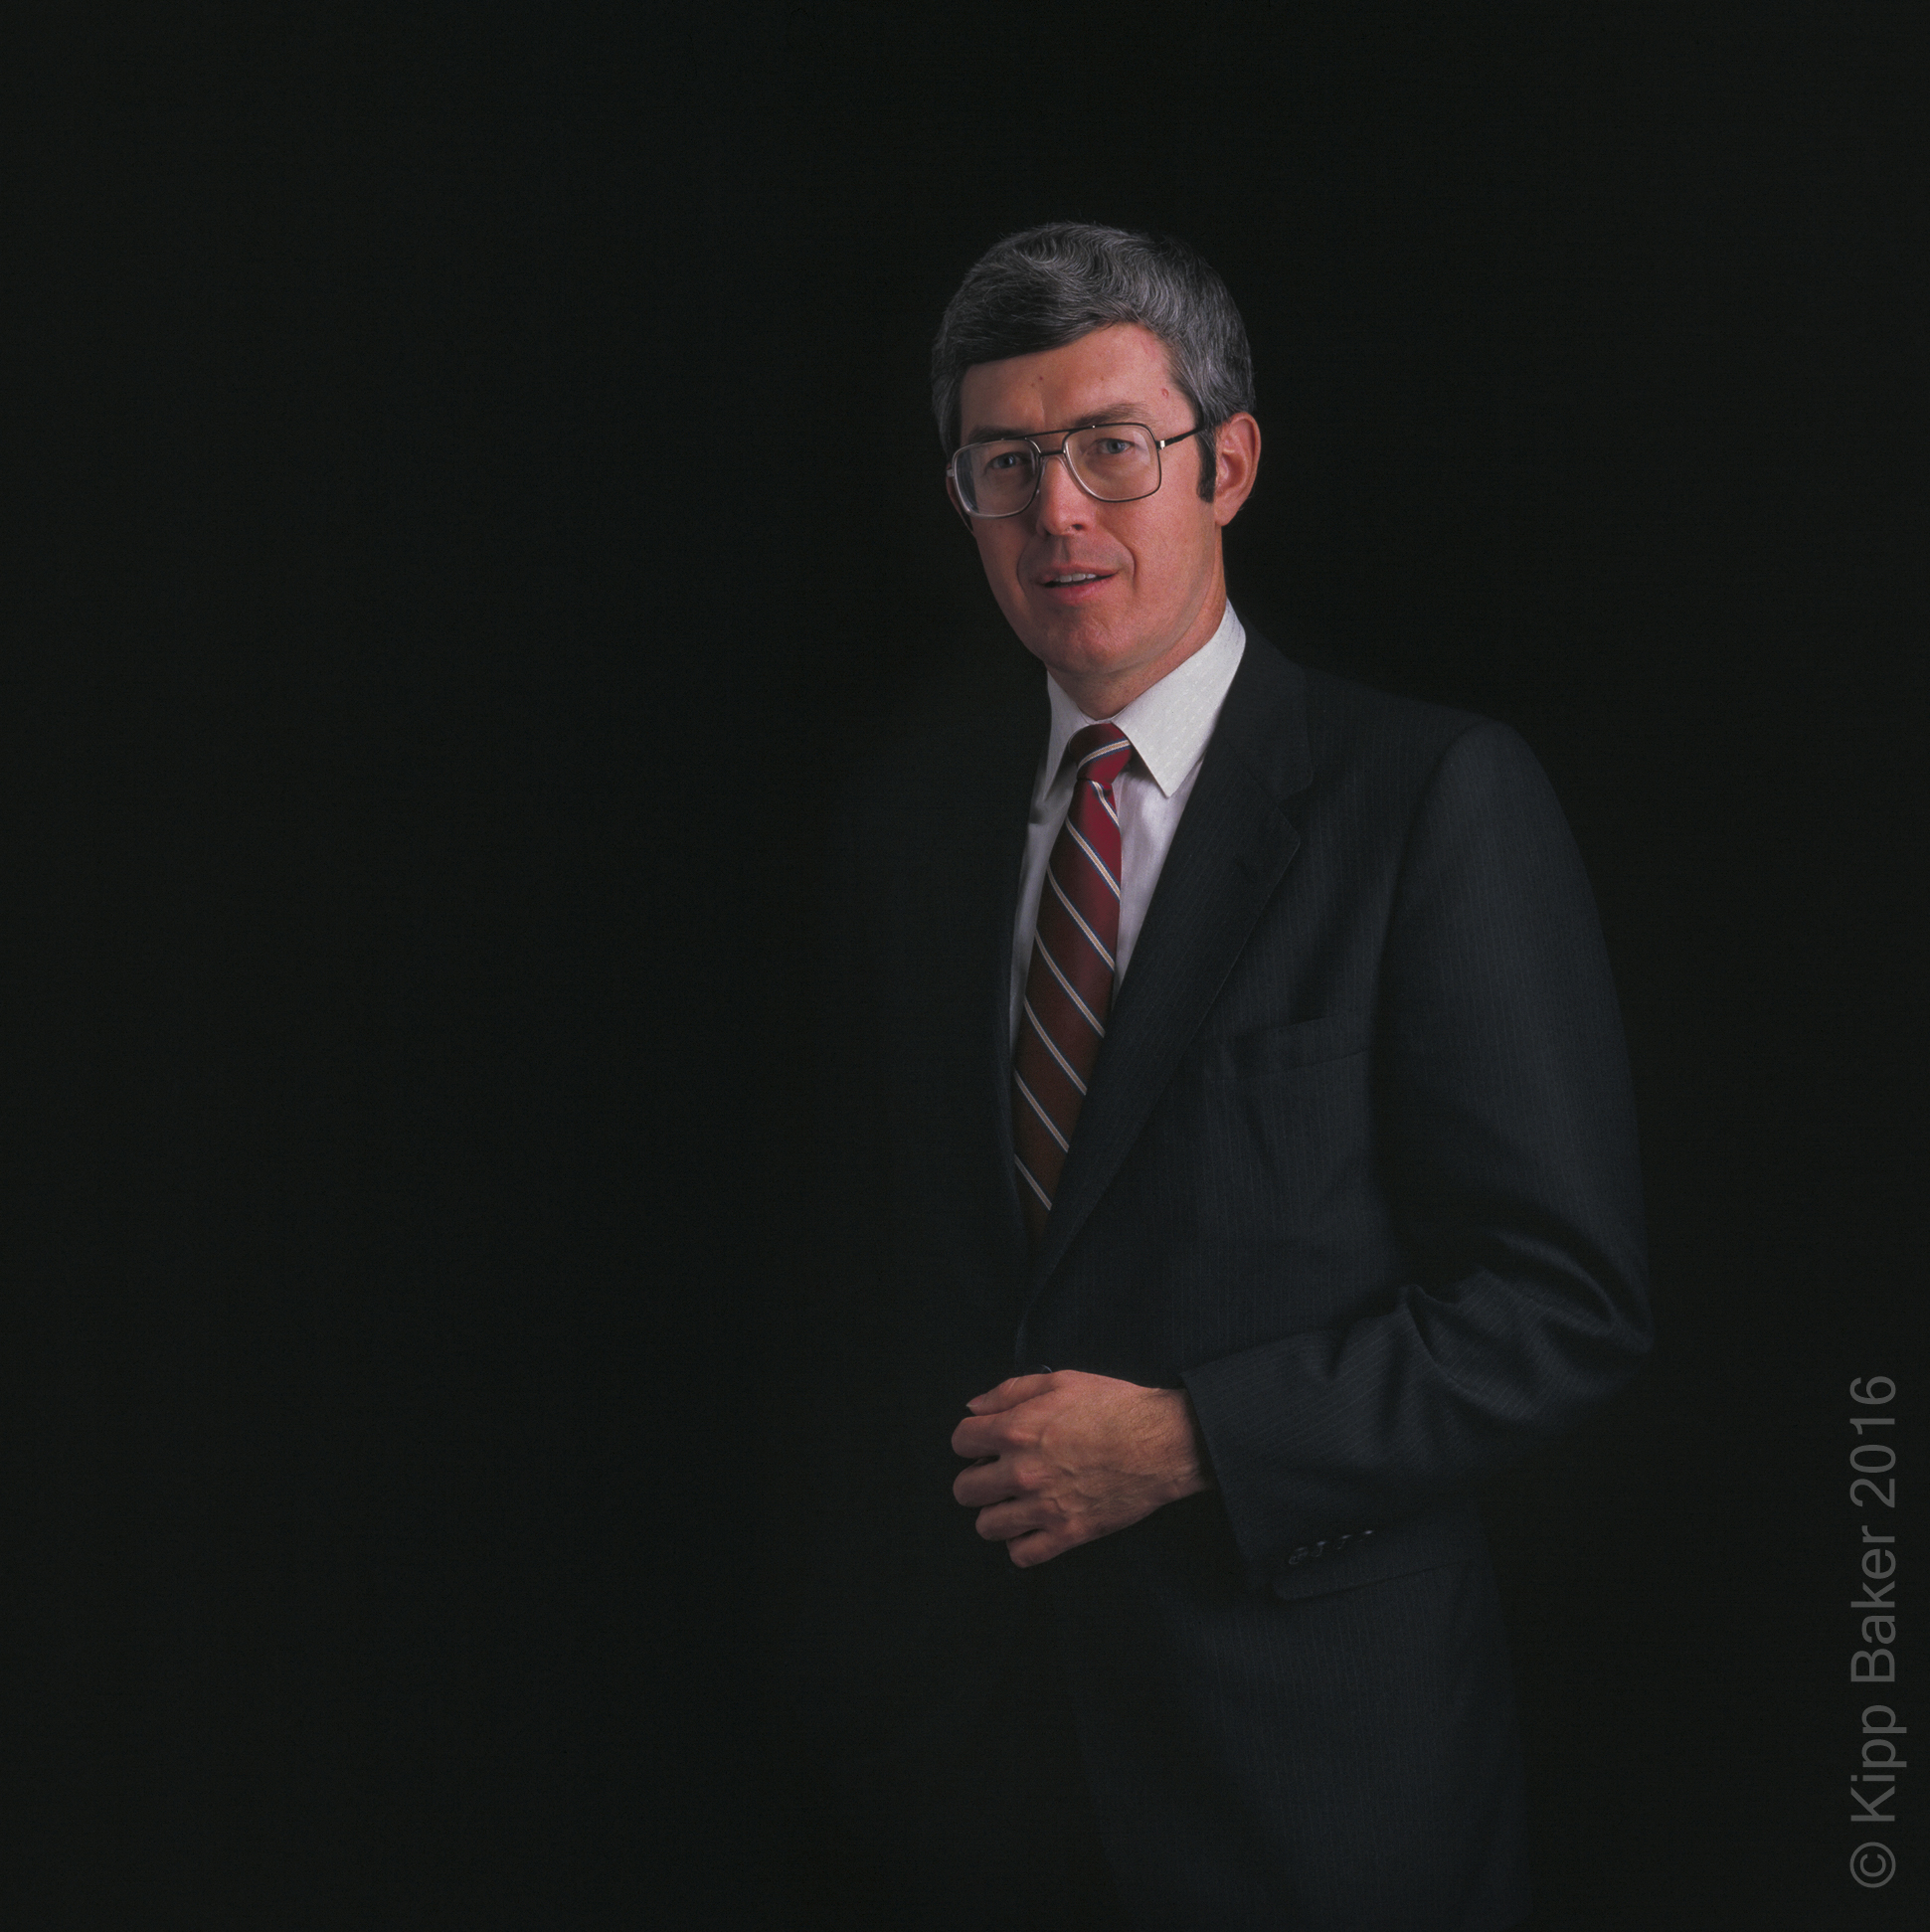 Executive portrait for annual report Copyright © Kipp Baker, All rights reserved.